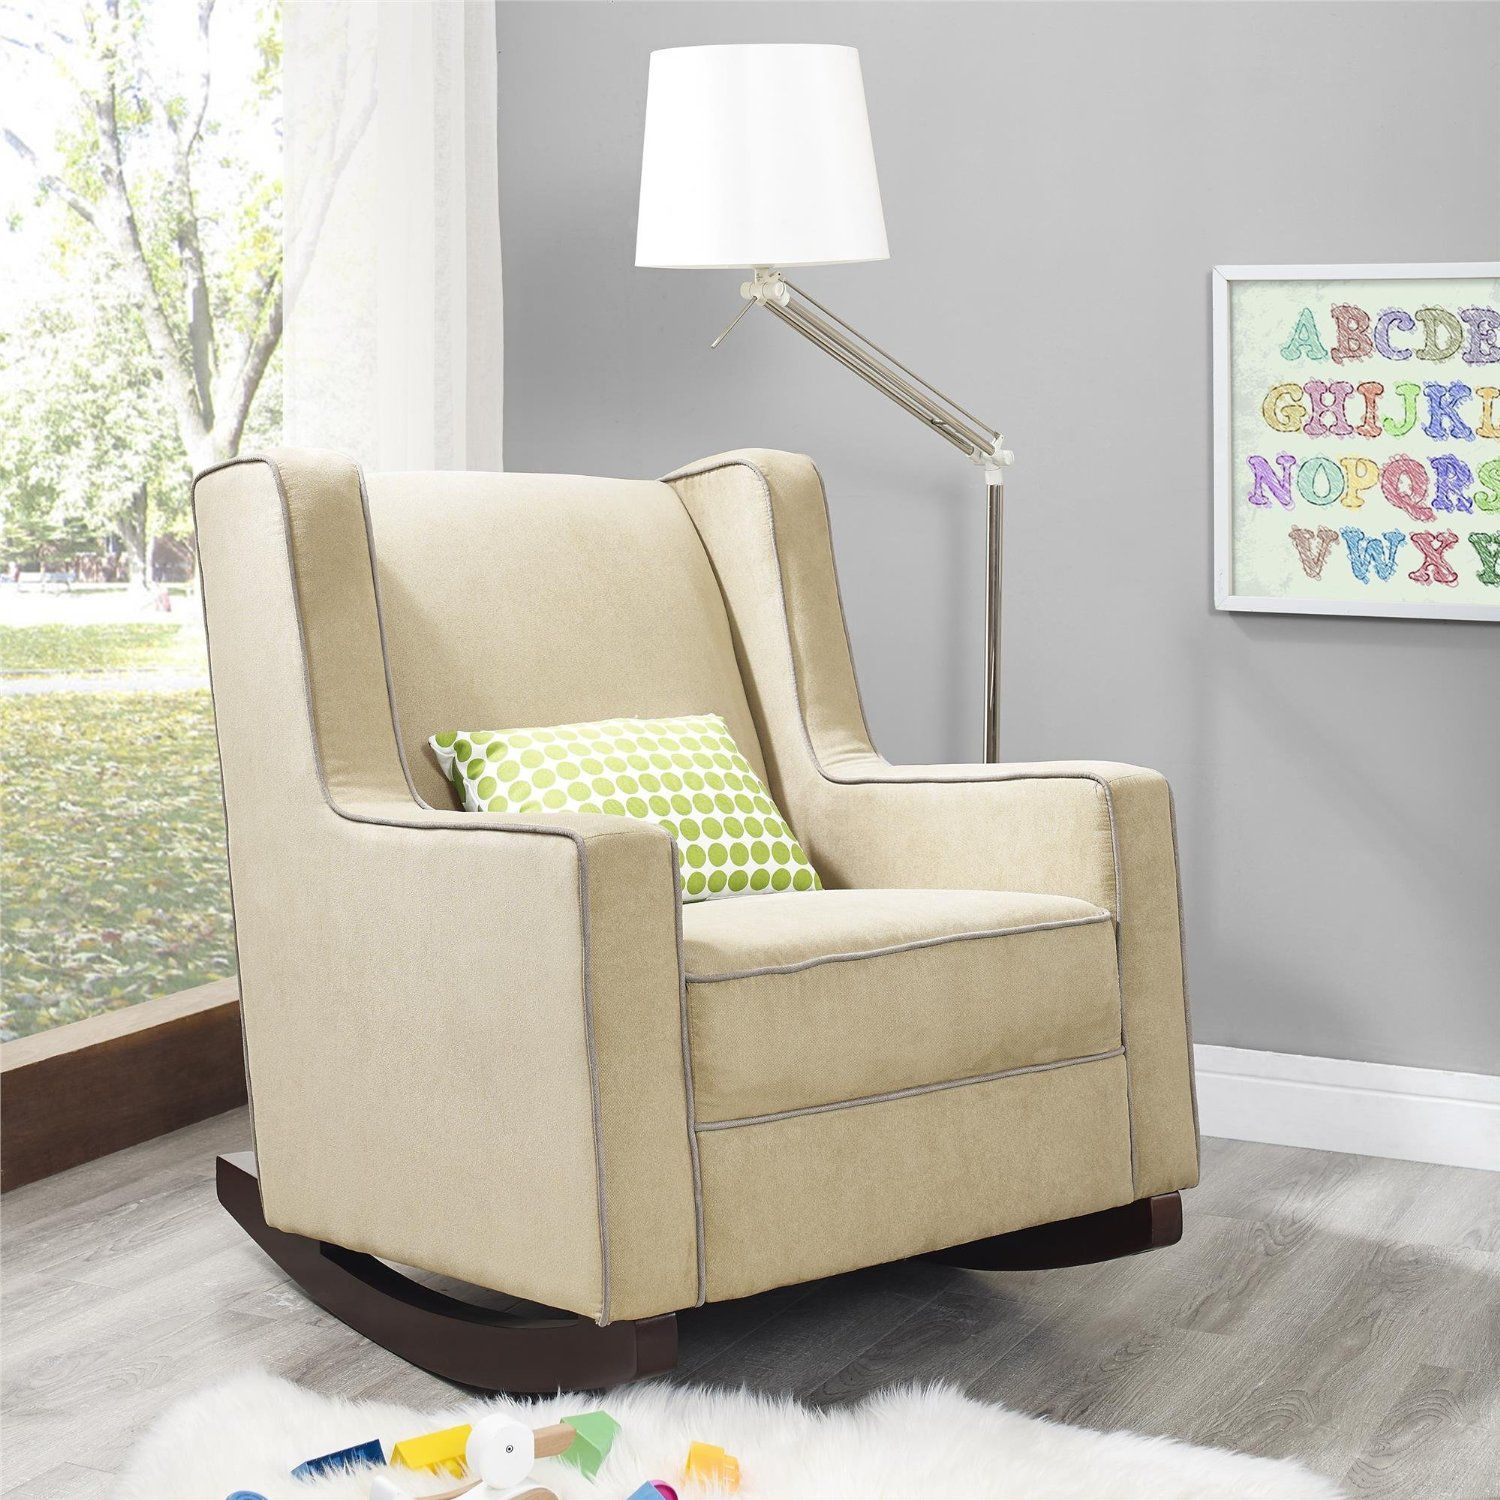 Amazon – Baby Relax The Abby Nursery Rocker Chair, Beige Inside Abbey Swivel Glider Recliners (View 8 of 20)